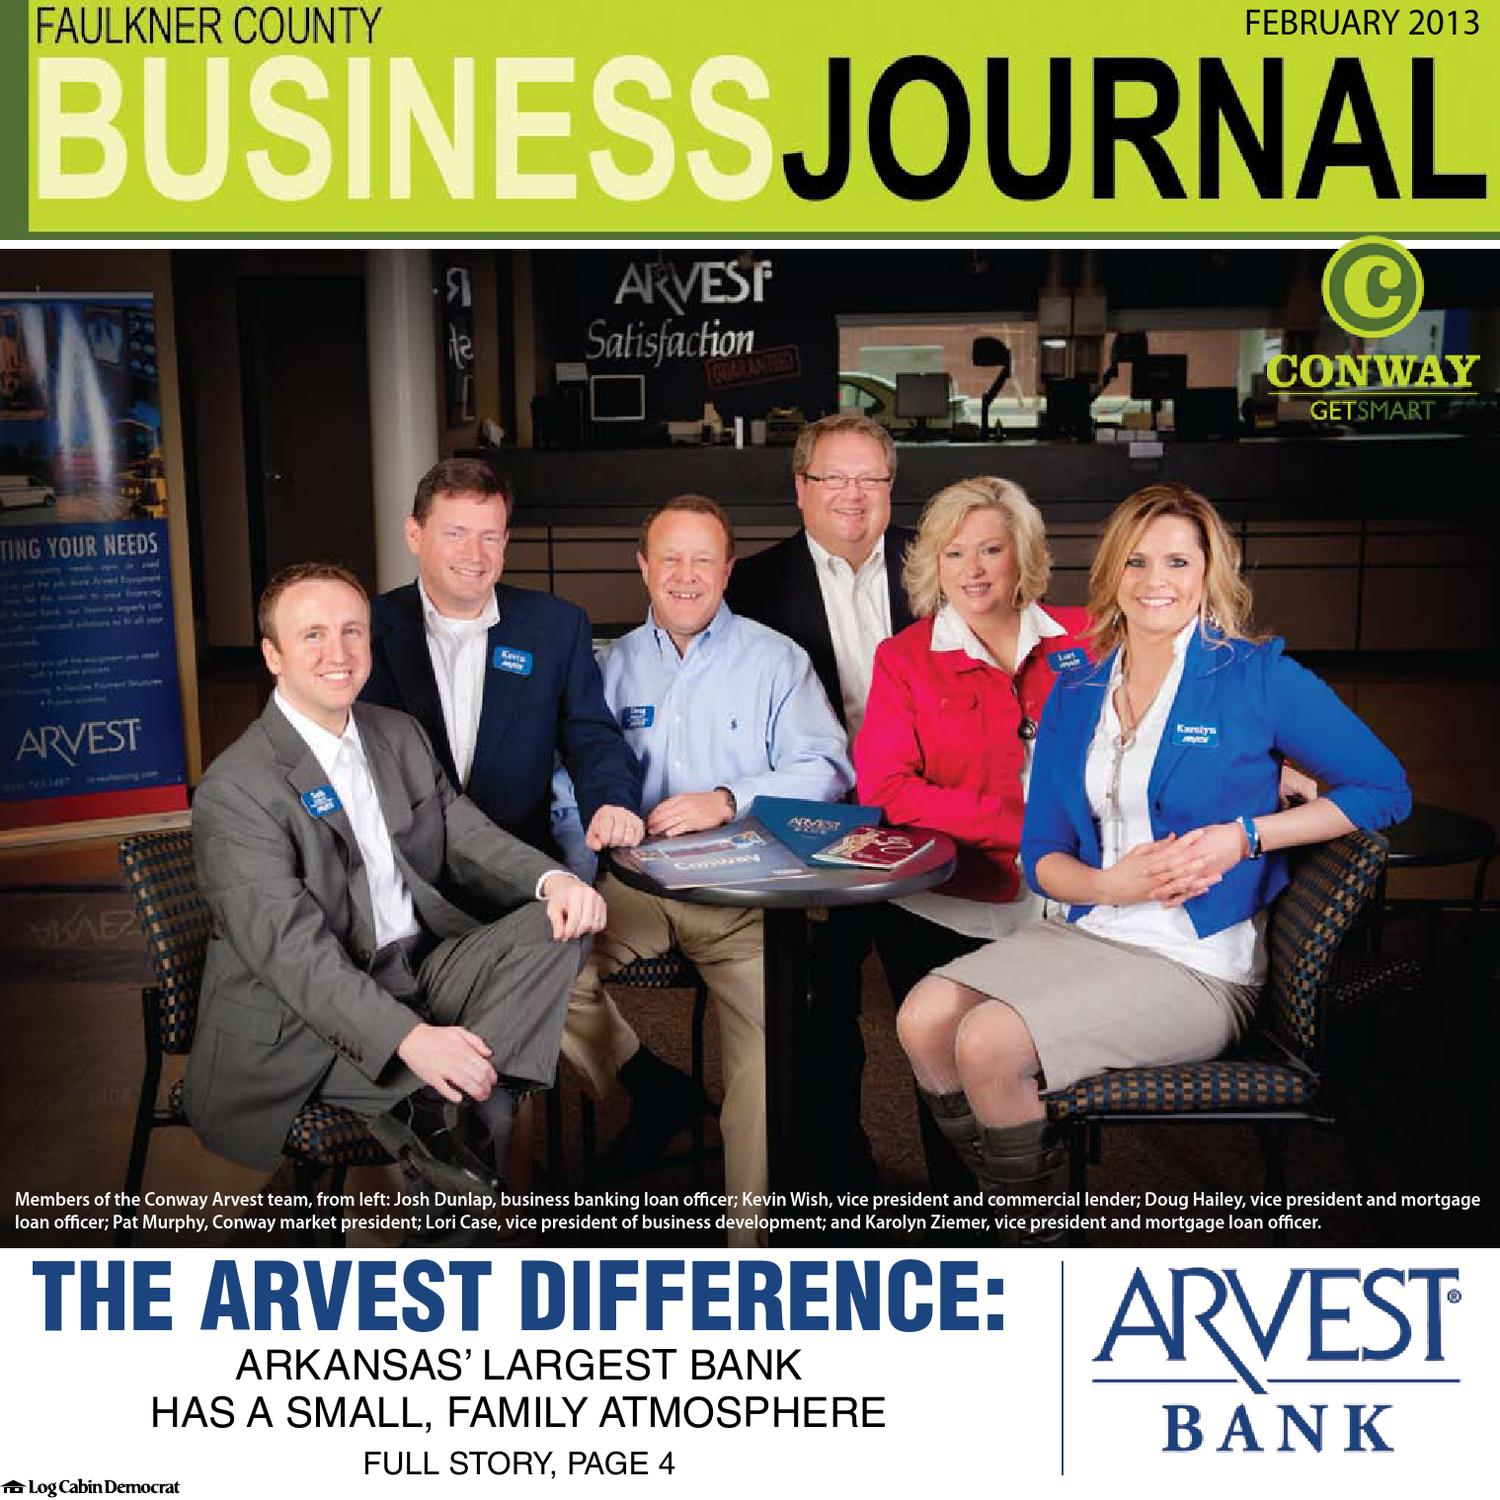 2013-02 Faulkner County Business Journal by Conway Area Chamber of